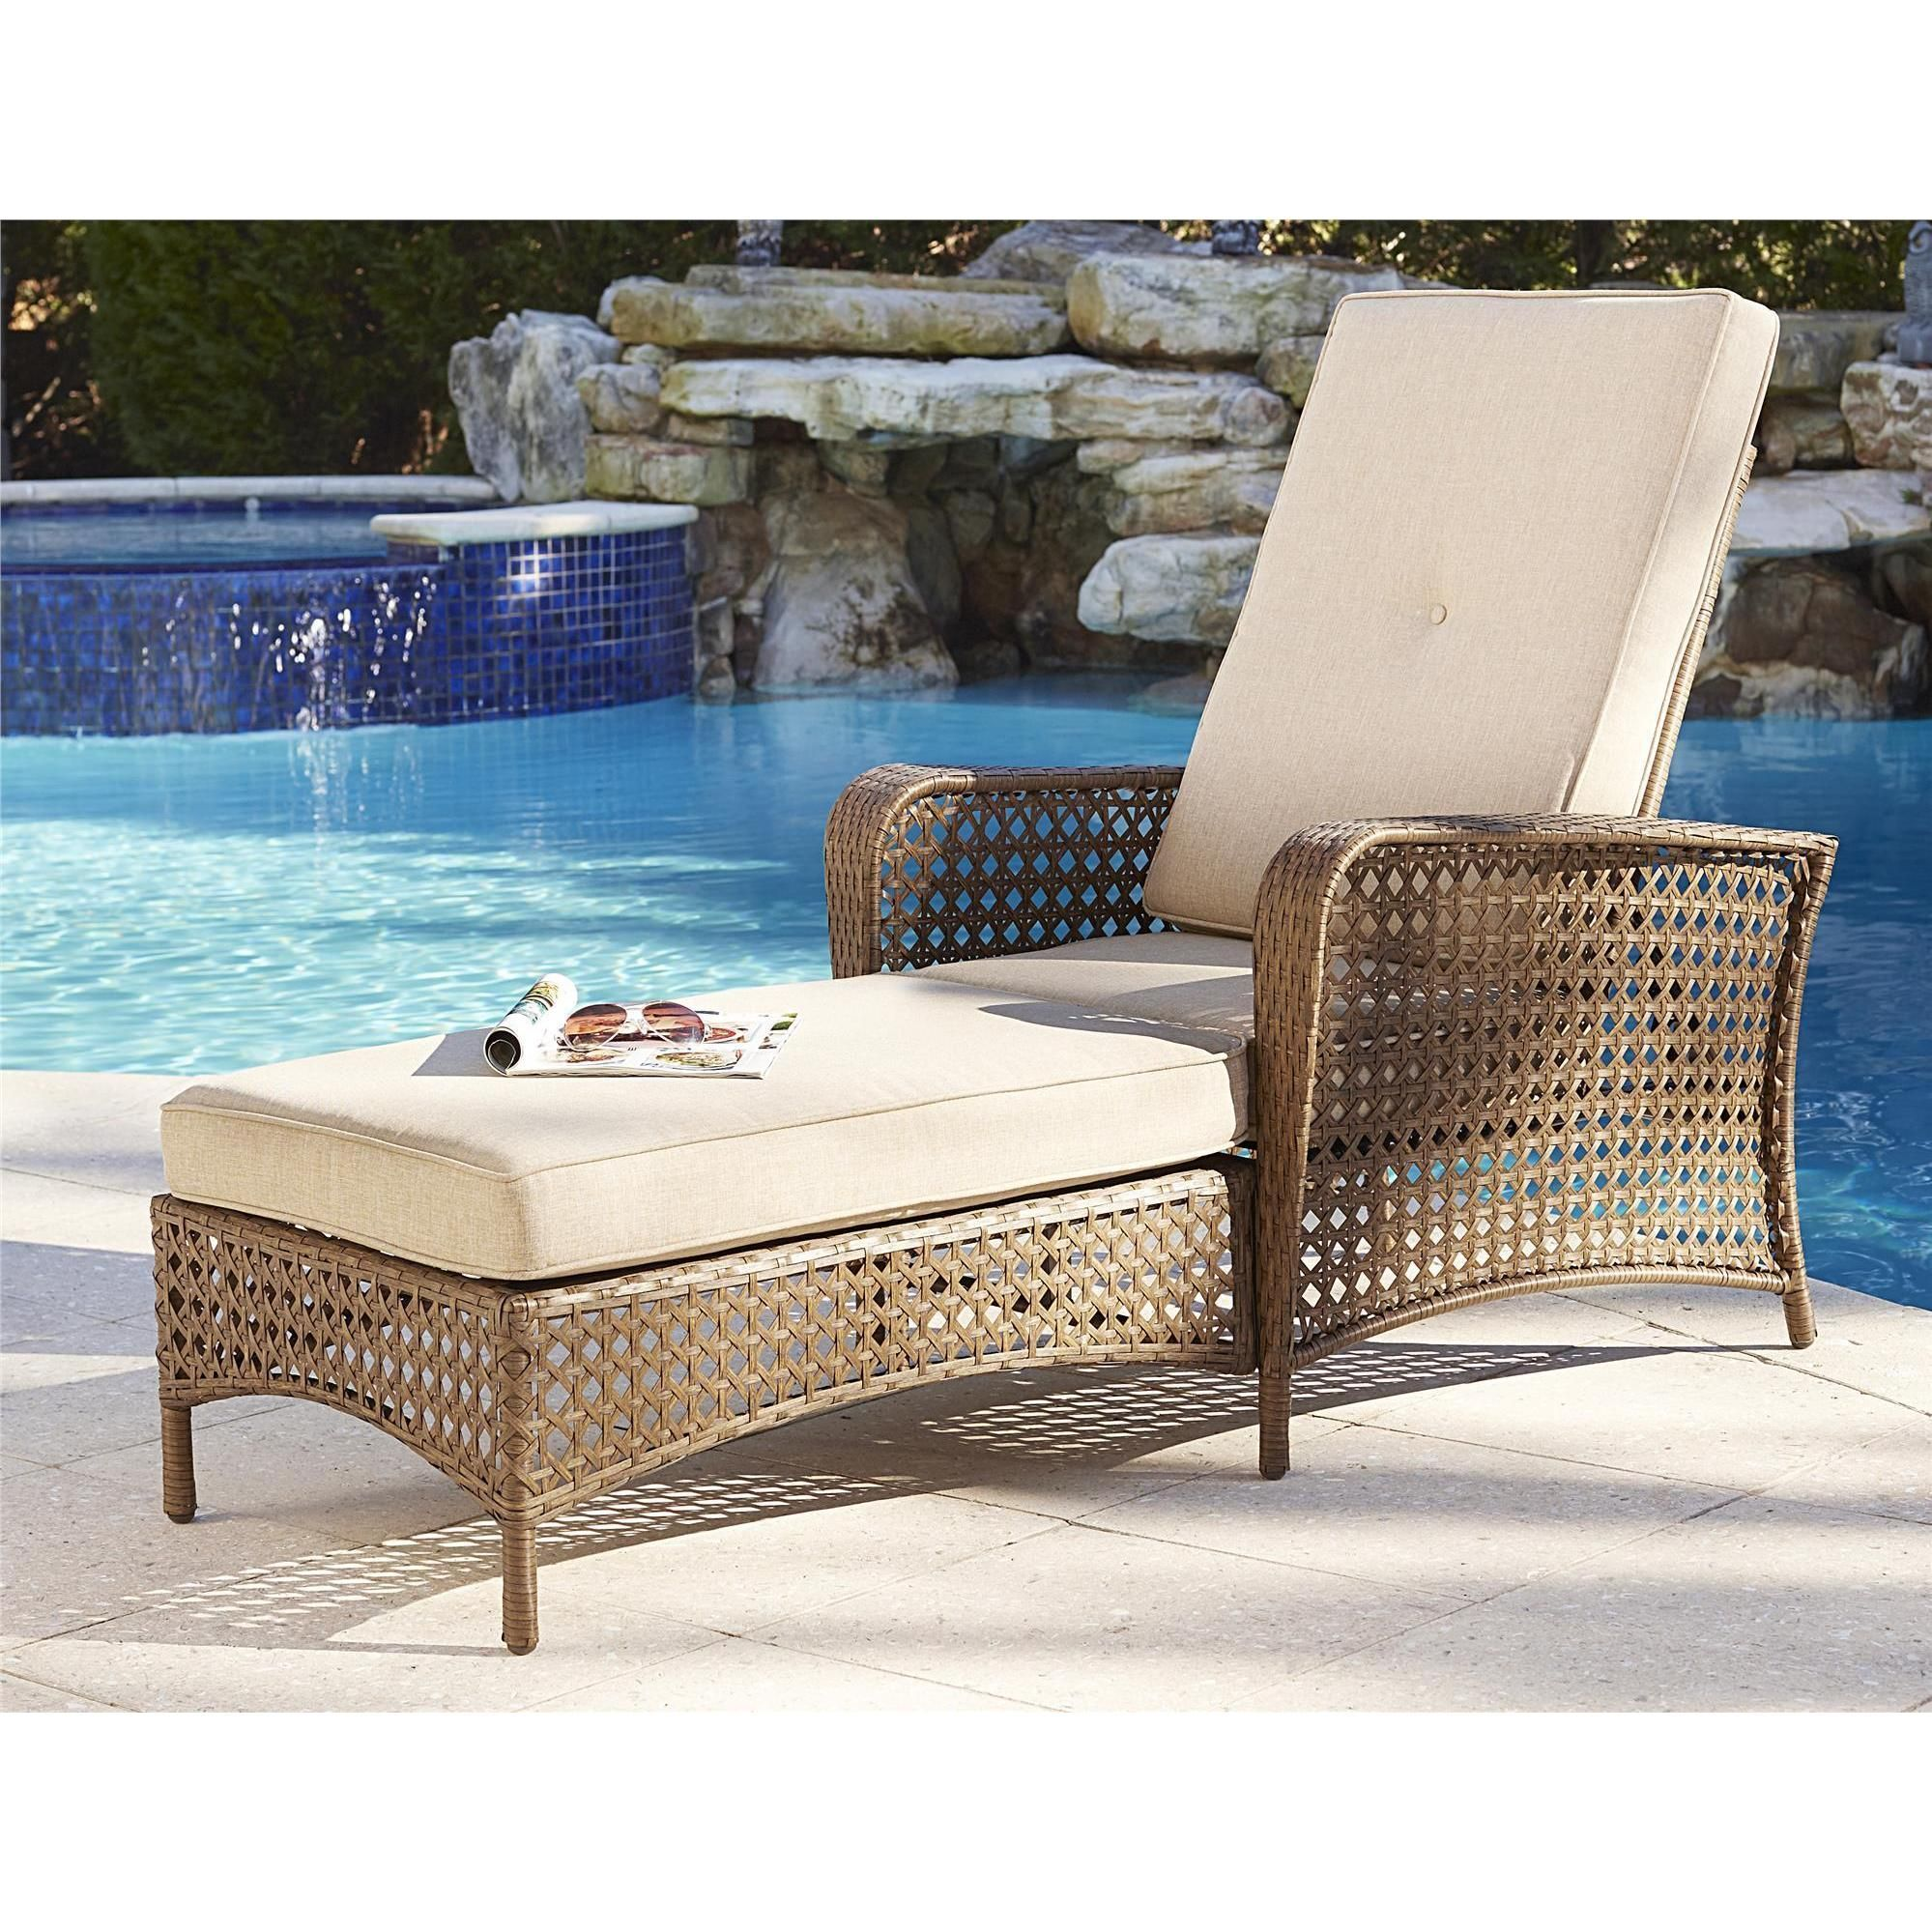 Chaise lounge is constructed with a strong steel frame for extra support and durability, wrapped in our resilient classic woven design. The removable plush seat and back cushions are covered in a woven, breathable fabric and easy to clean and maintain.